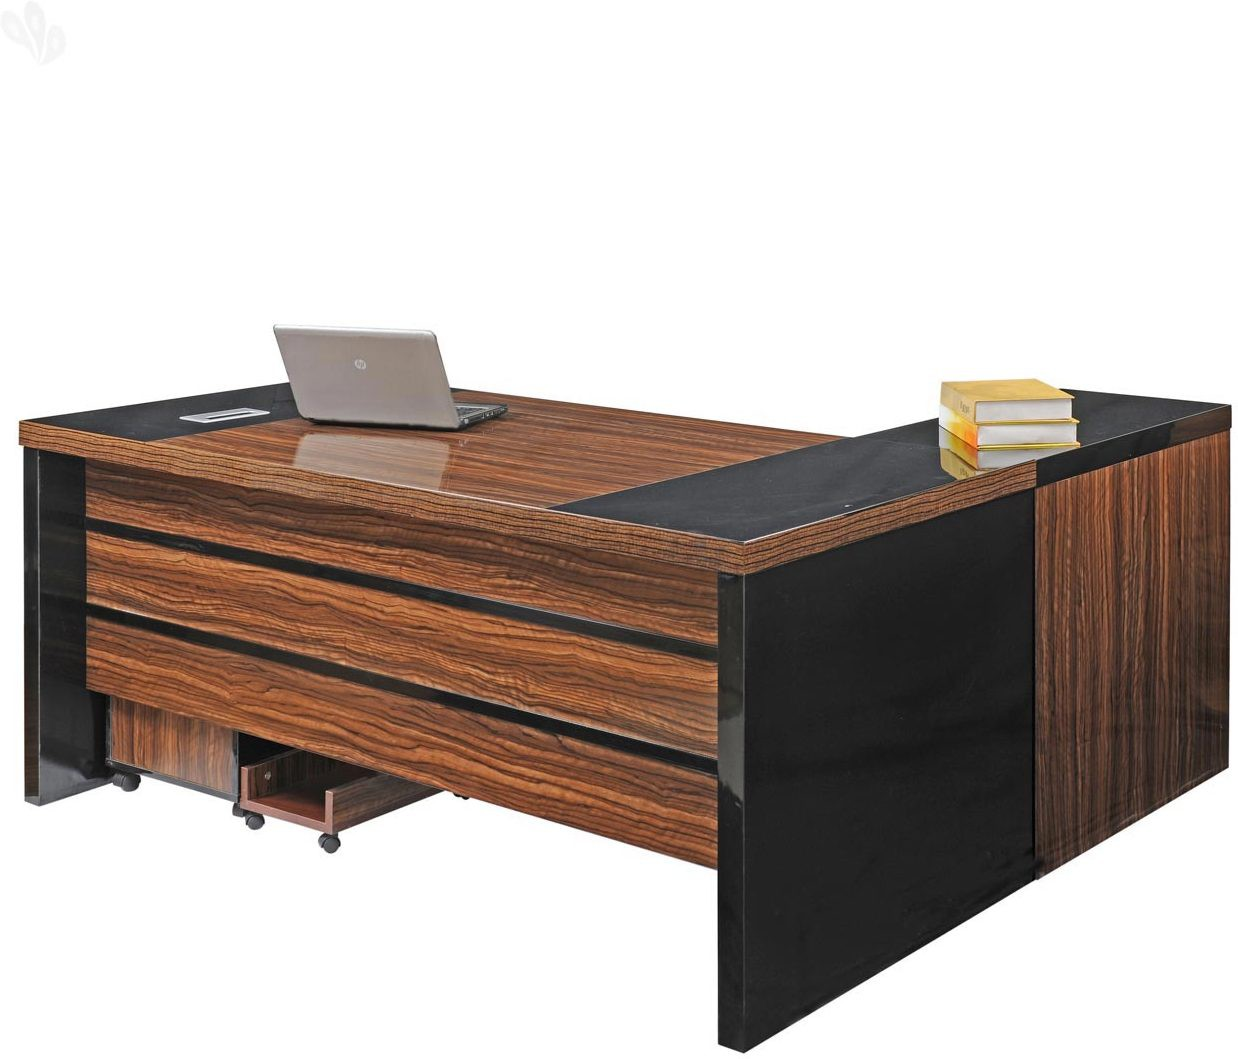 View Royal Oak Holly Engineered Wood Office Table(Free Standing, Finish Color - Honey Brown) Furniture (Royal Oak)